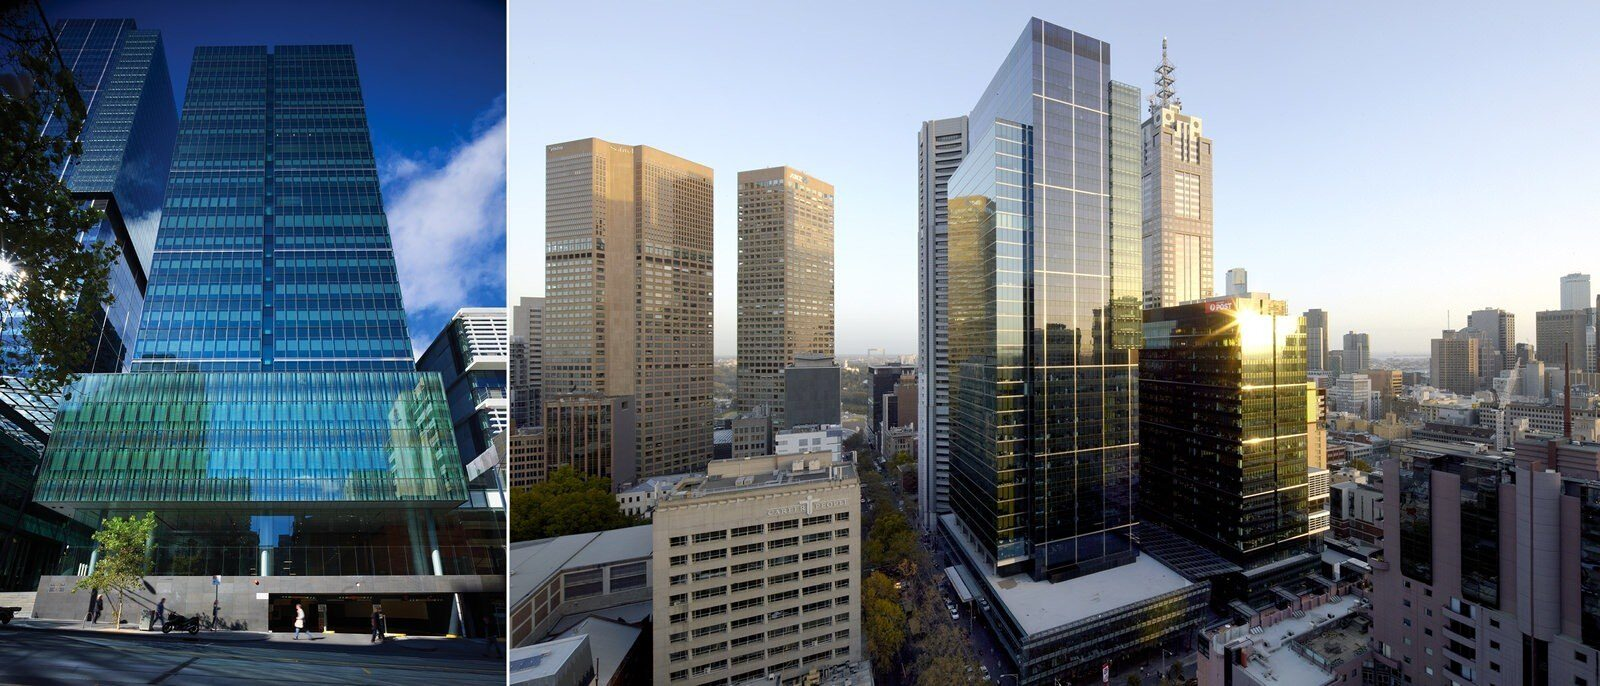 A lot of modern glass and steel buildings that are in a downtown area in a city near some older buildings.